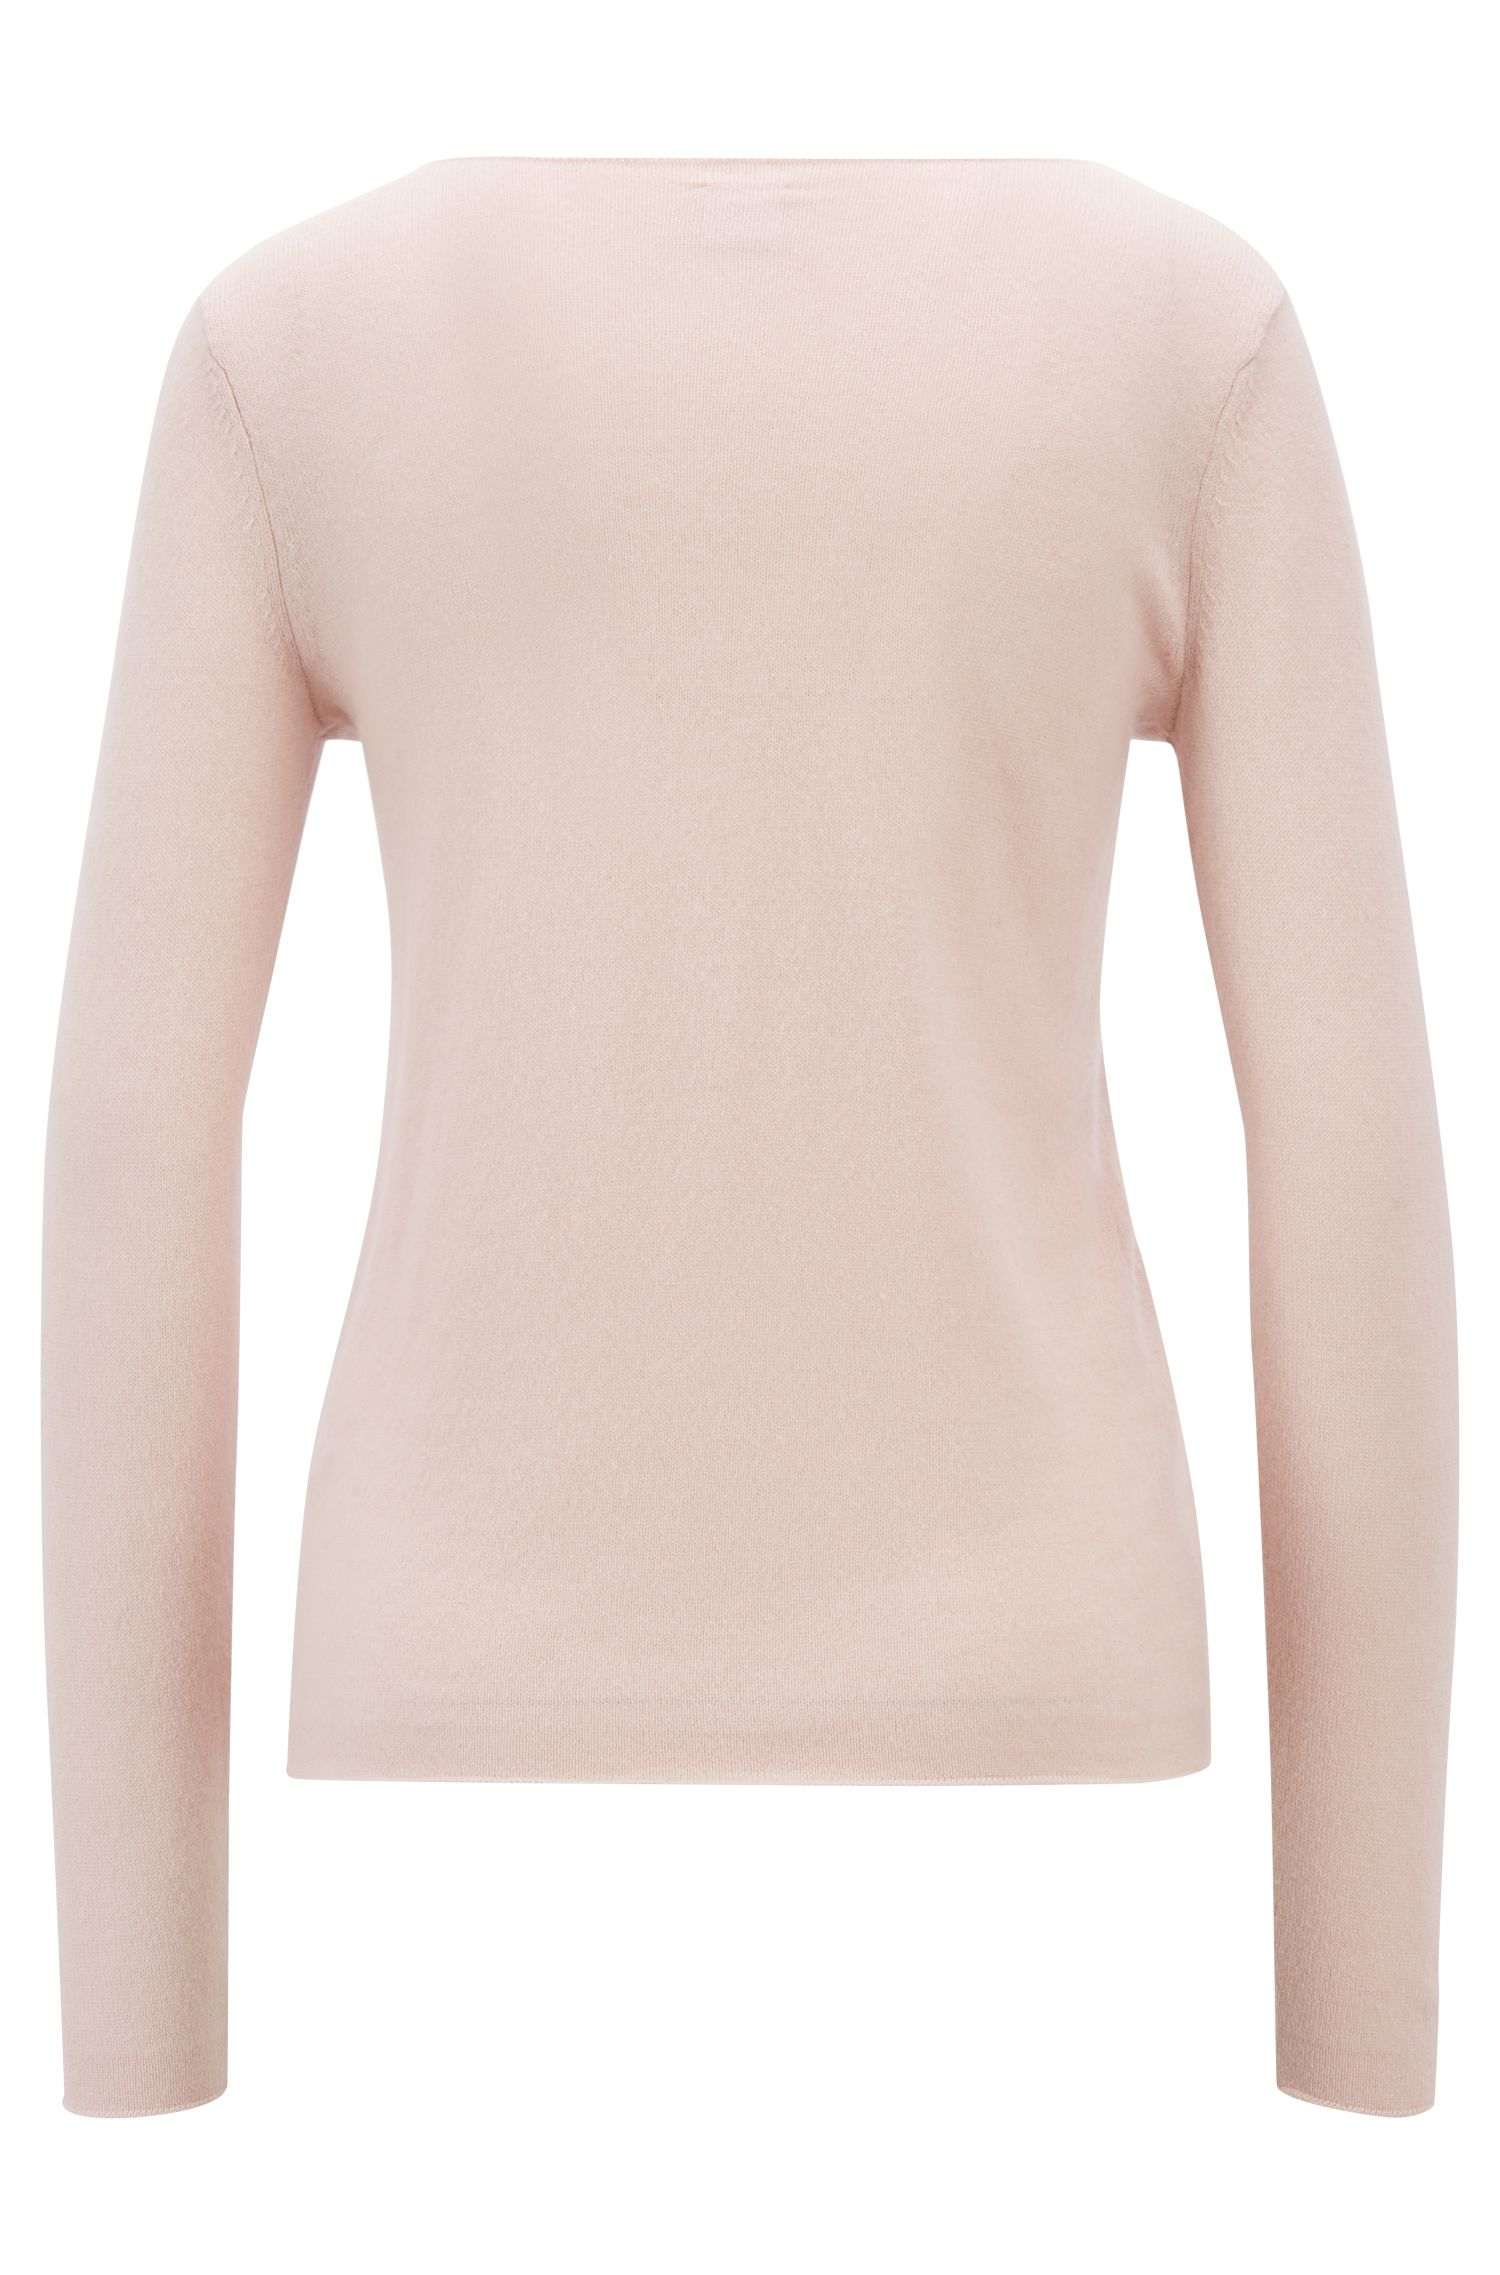 Boat-neck sweater in pure cashmere, light pink